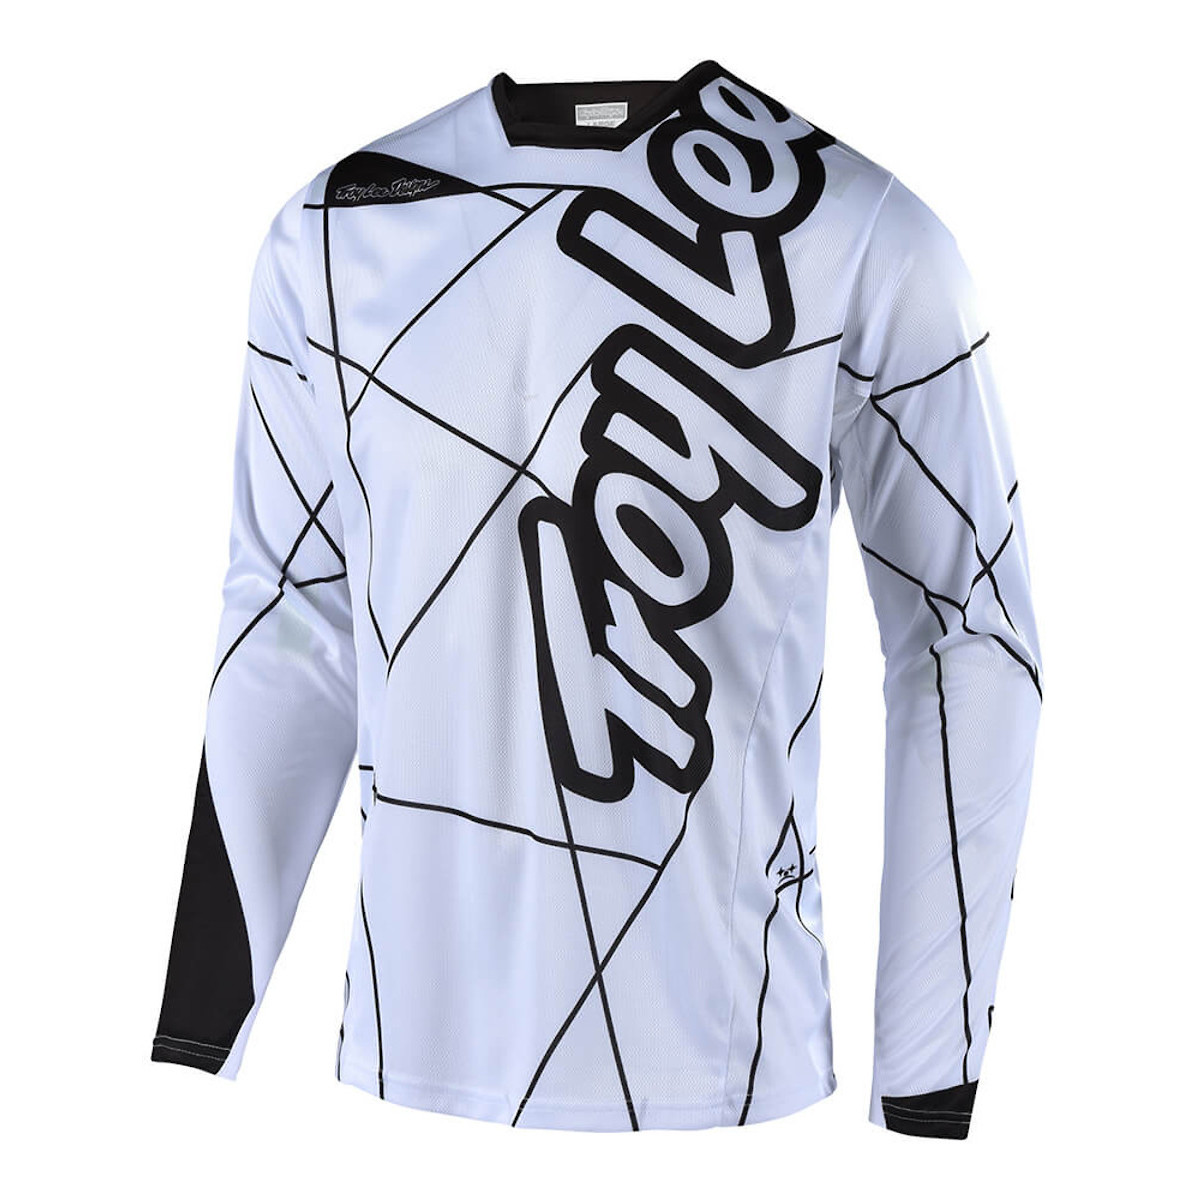 2018 TLD Sprint Youth Metric White/Black